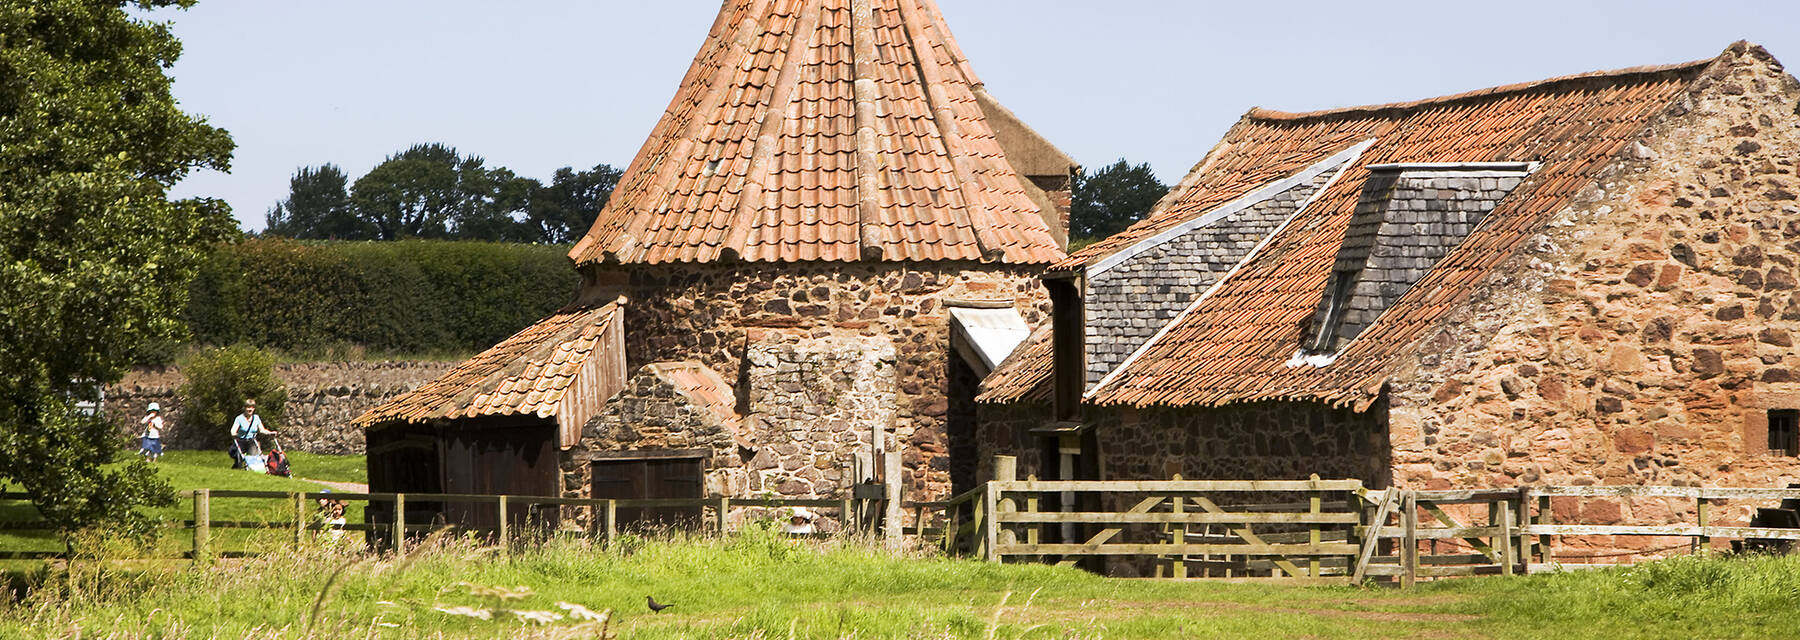 Preston Mill, a watermill with a Dutch-style conical roof